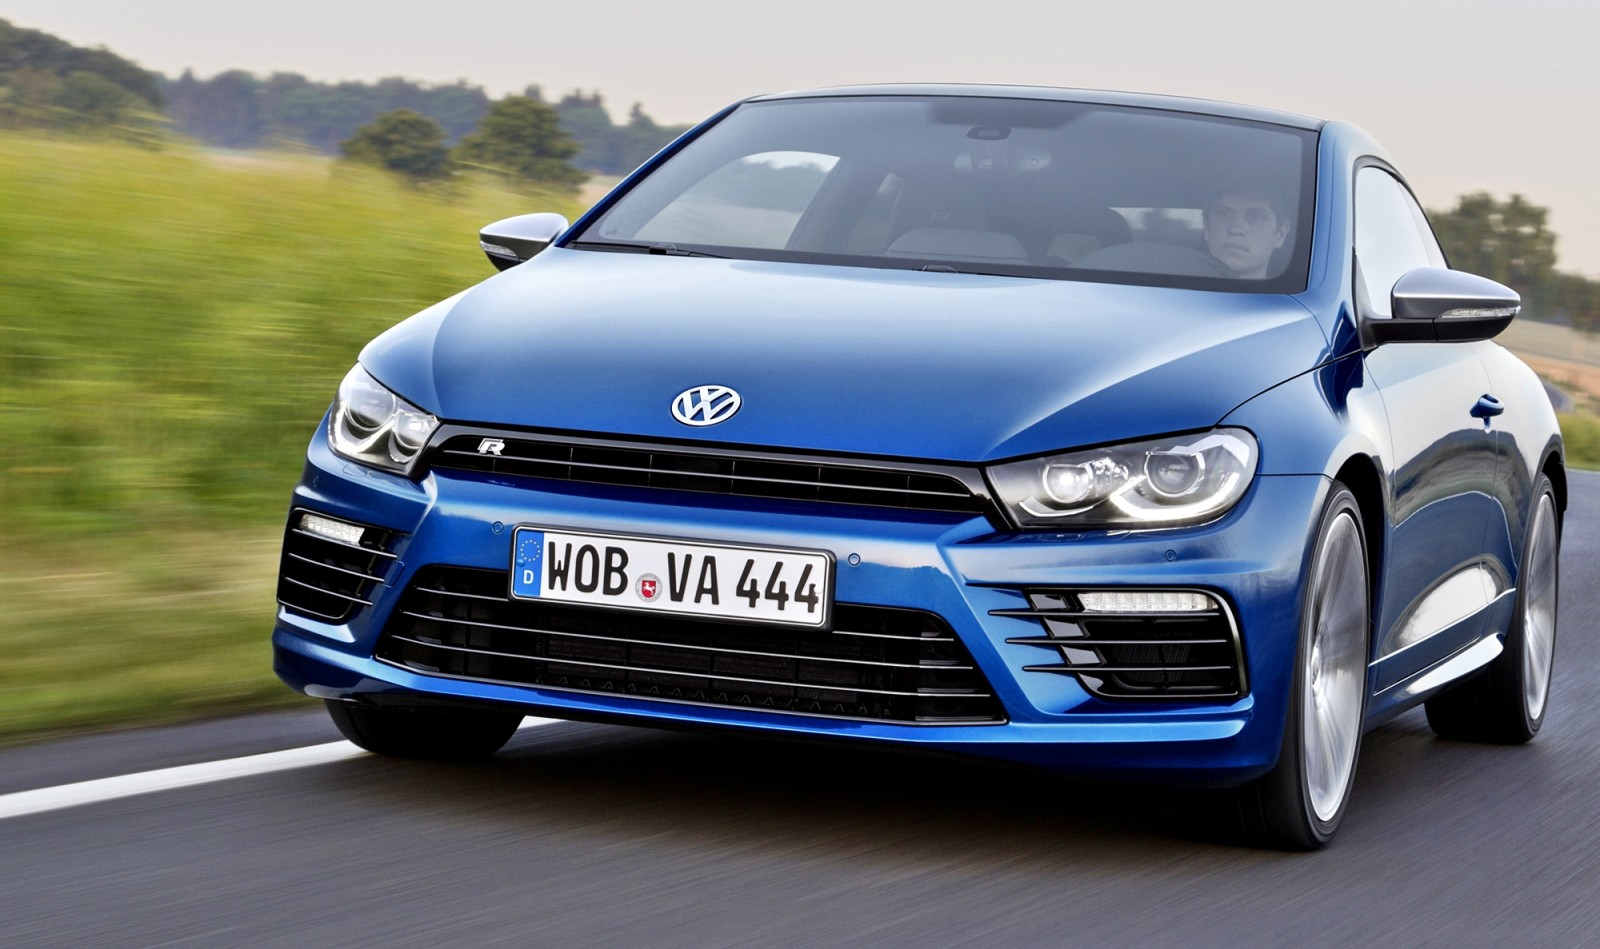 2014 volkswagen scirocco r and r line dynamic launch galleries 24. Black Bedroom Furniture Sets. Home Design Ideas